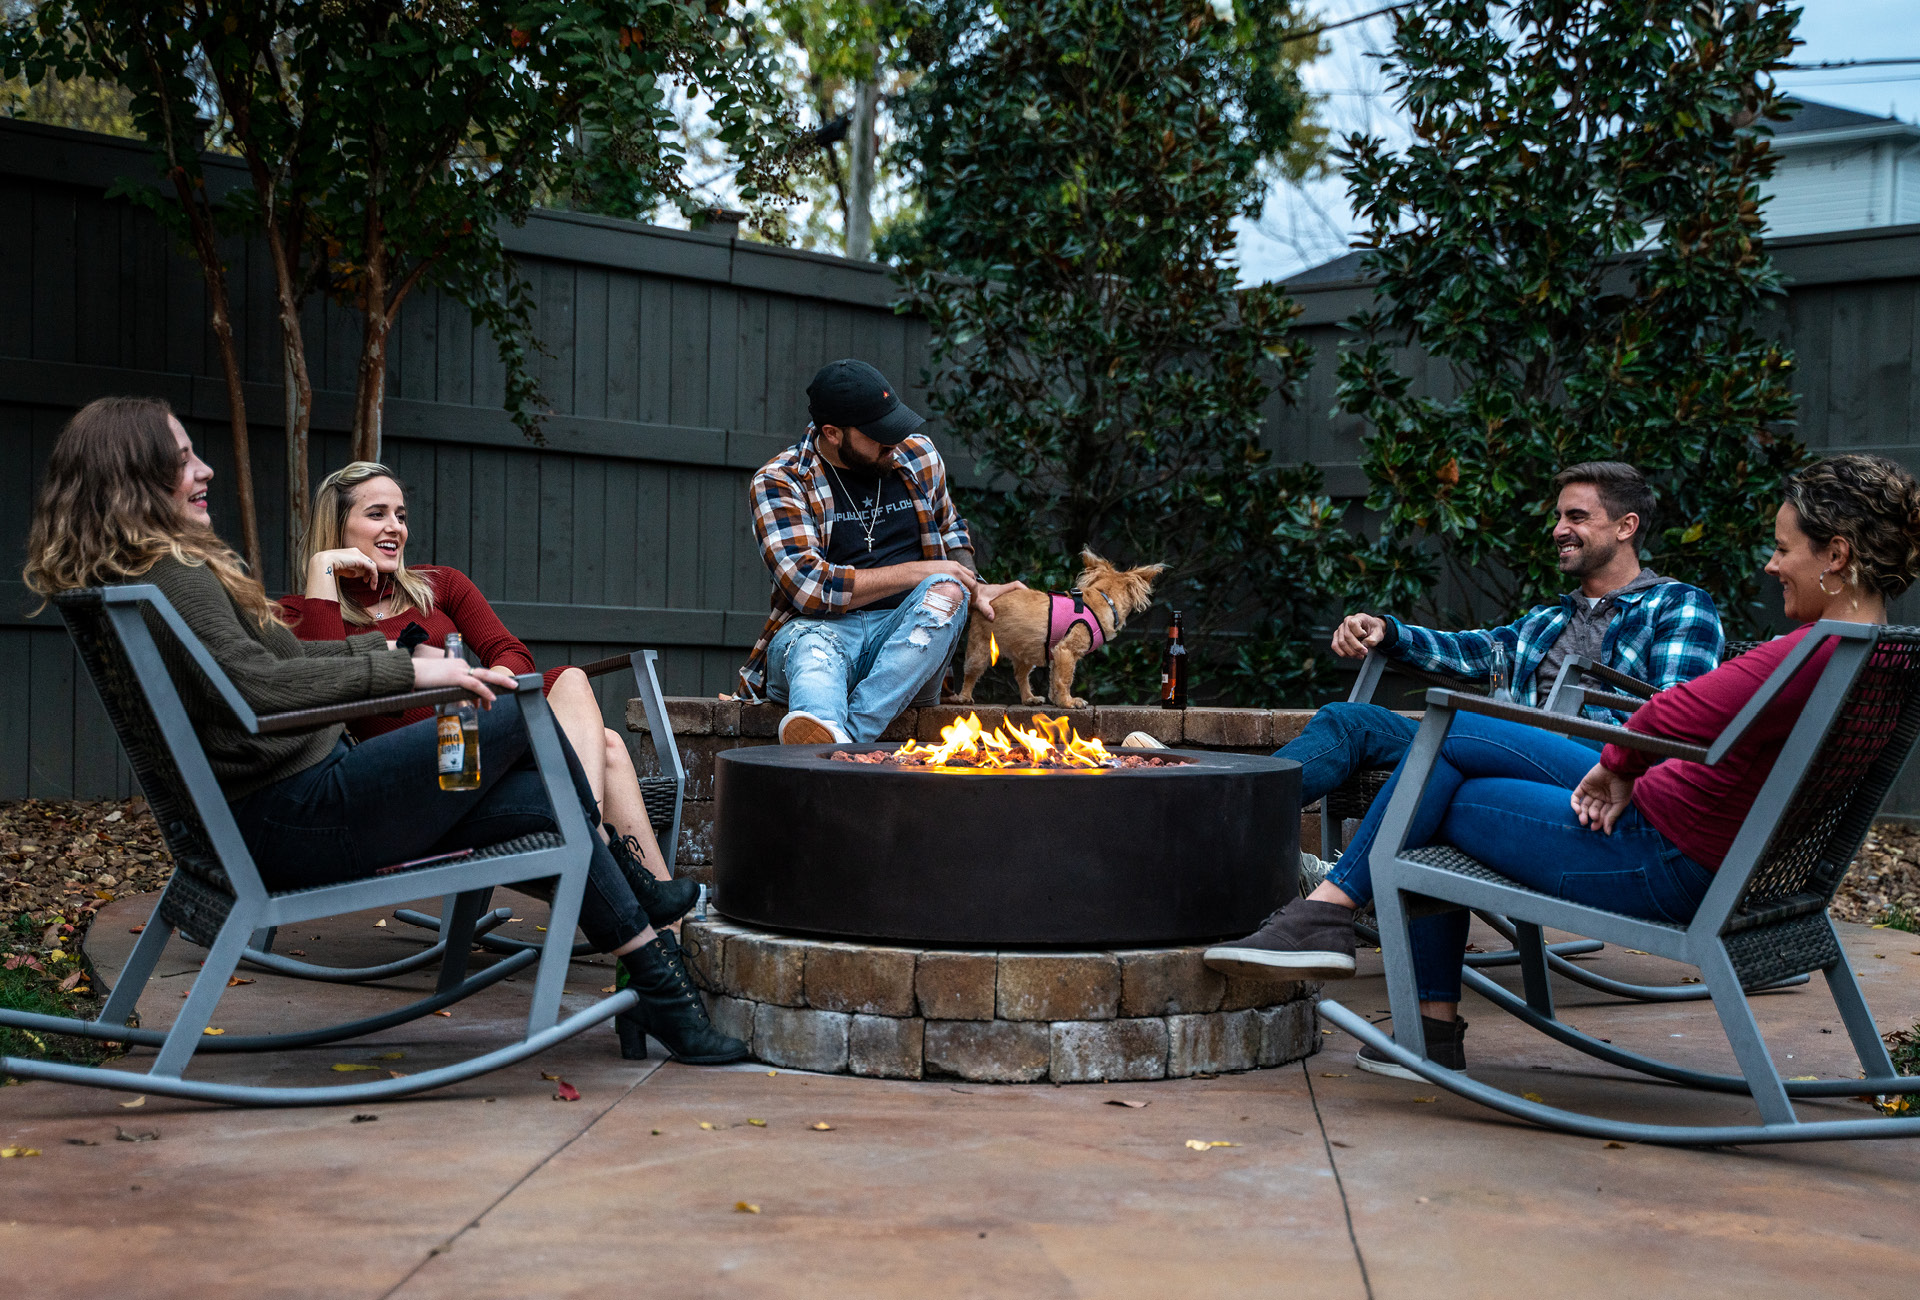 A group of friends around the fire pit